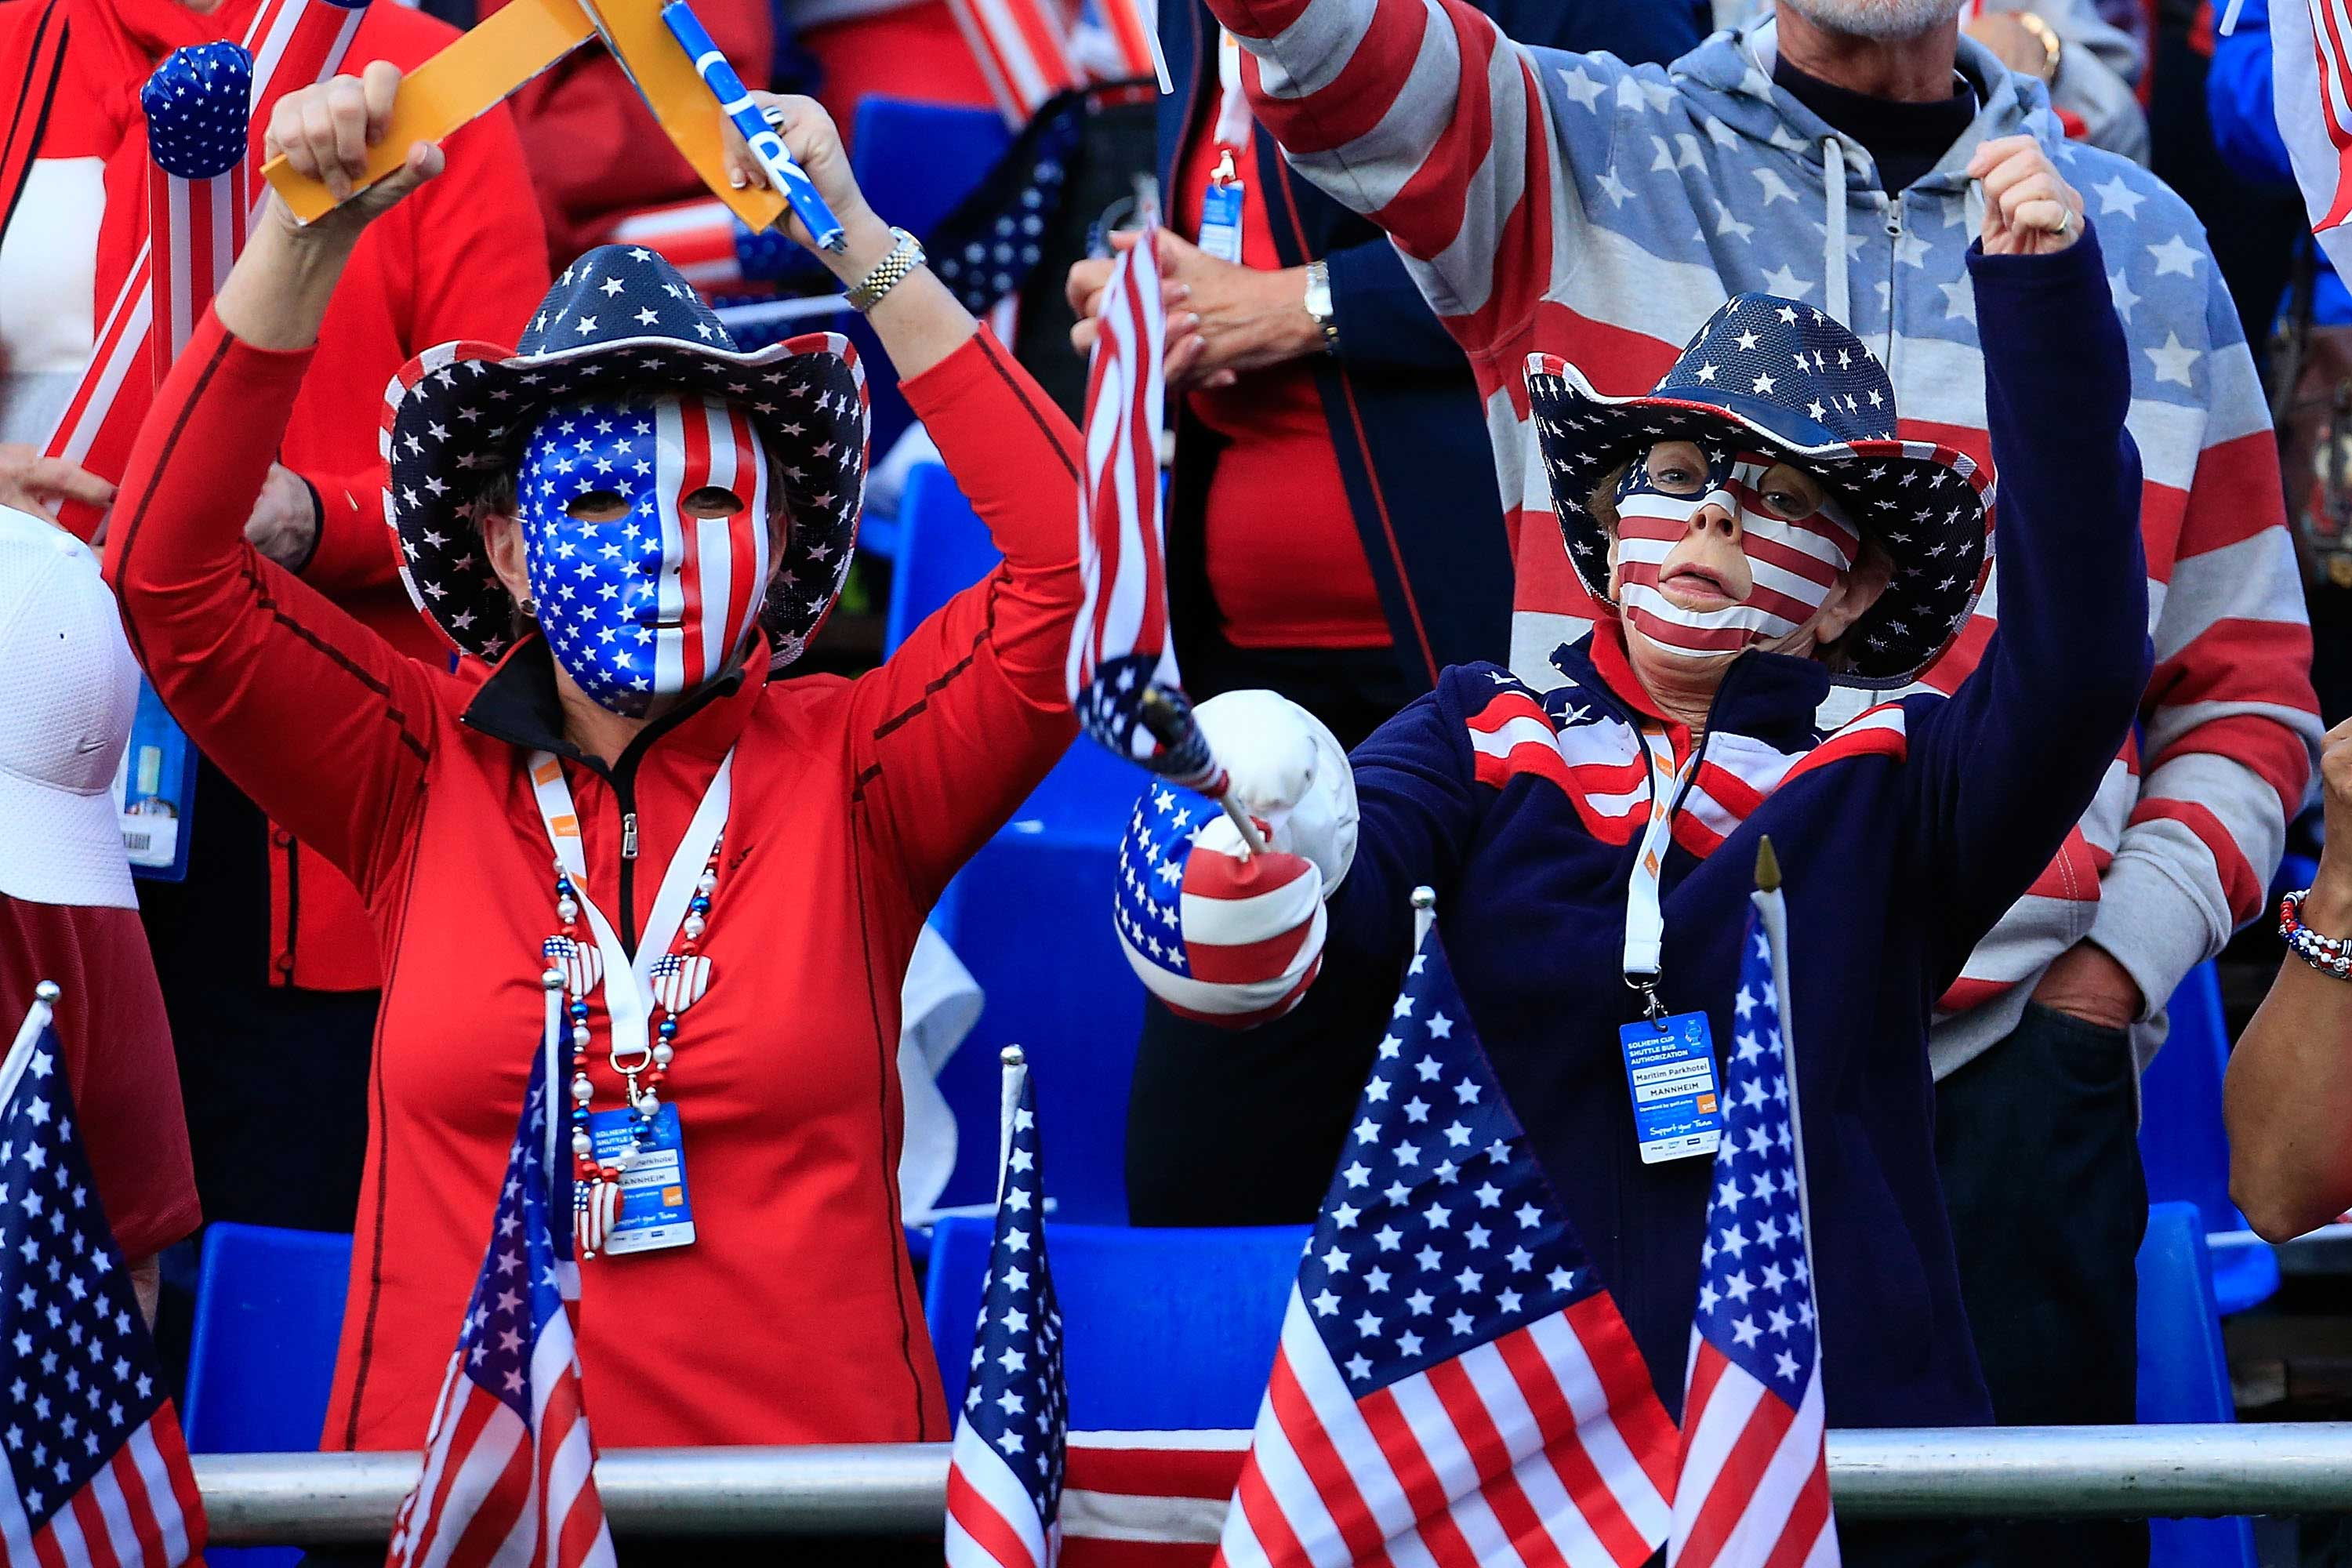 Two supporters went all out on day one at the Solheim Cup (Photo: Getty Images)